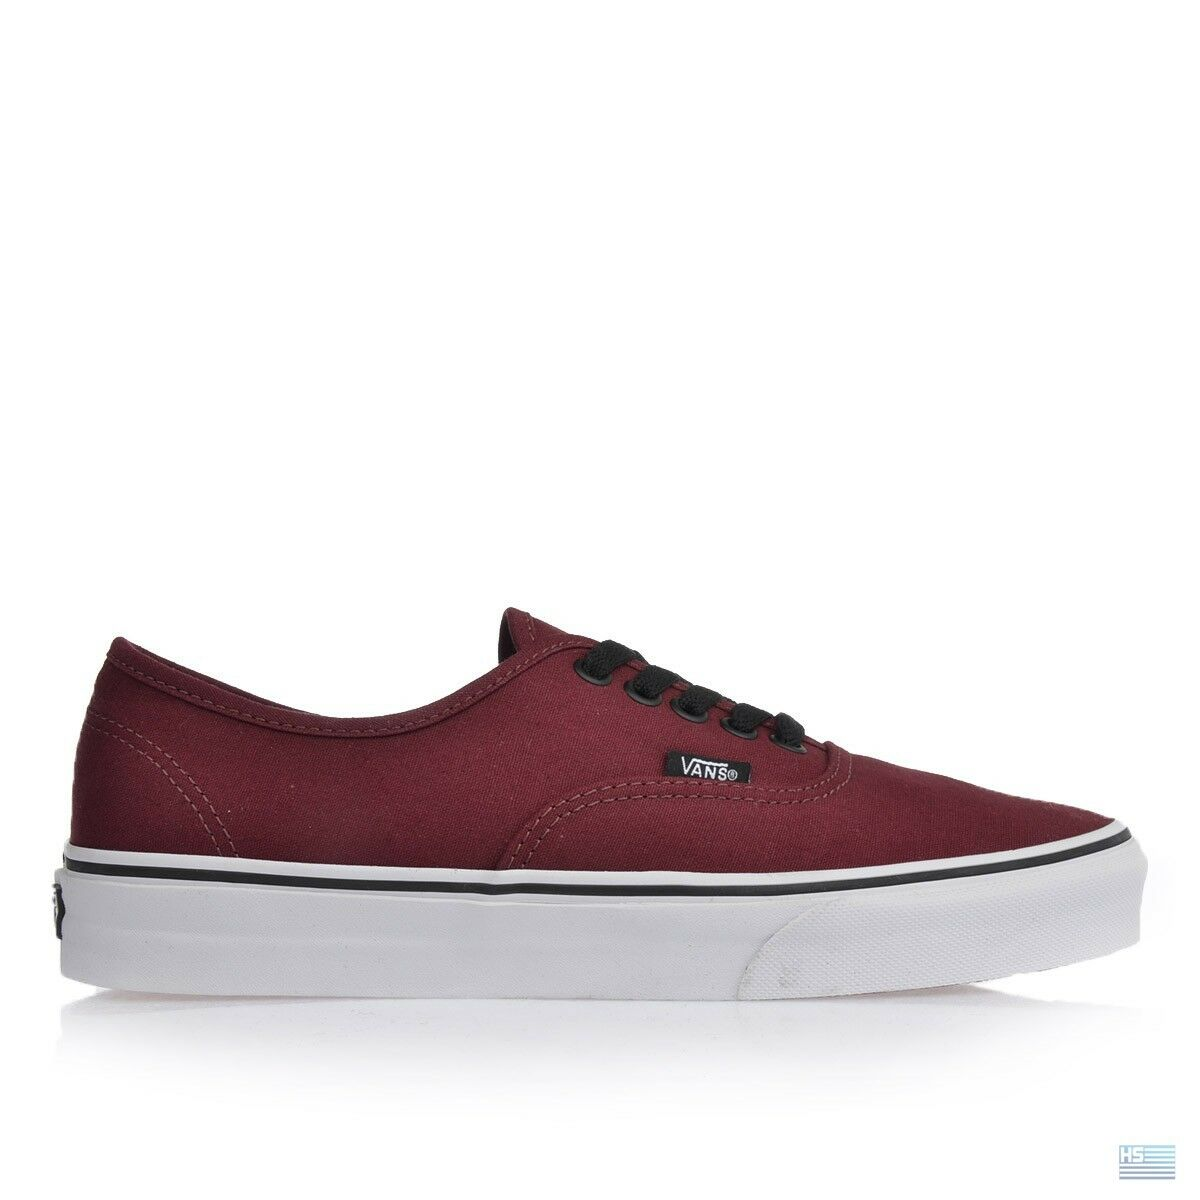 VANS SNEAKERS AUTHENTIC BORDEAUX BORDO WEIß SNEAKERS VANS UNISEX Gr.36- Gr.46 a8f6a2